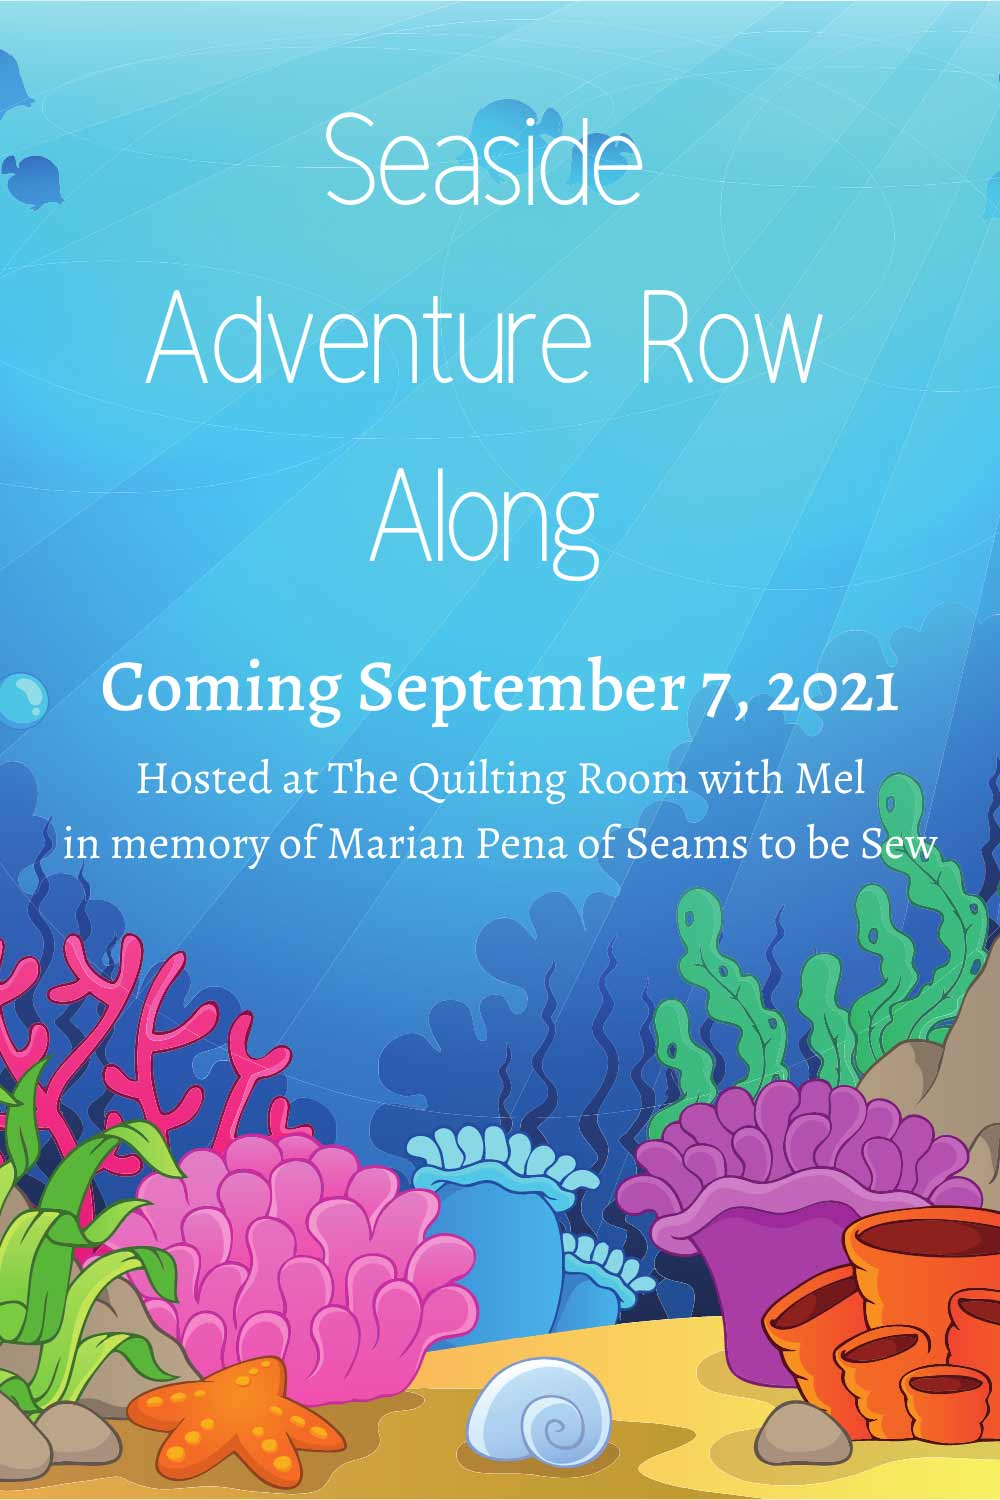 Join us for the 2021 seaside adventure quilt row along and celebrate our oceans.